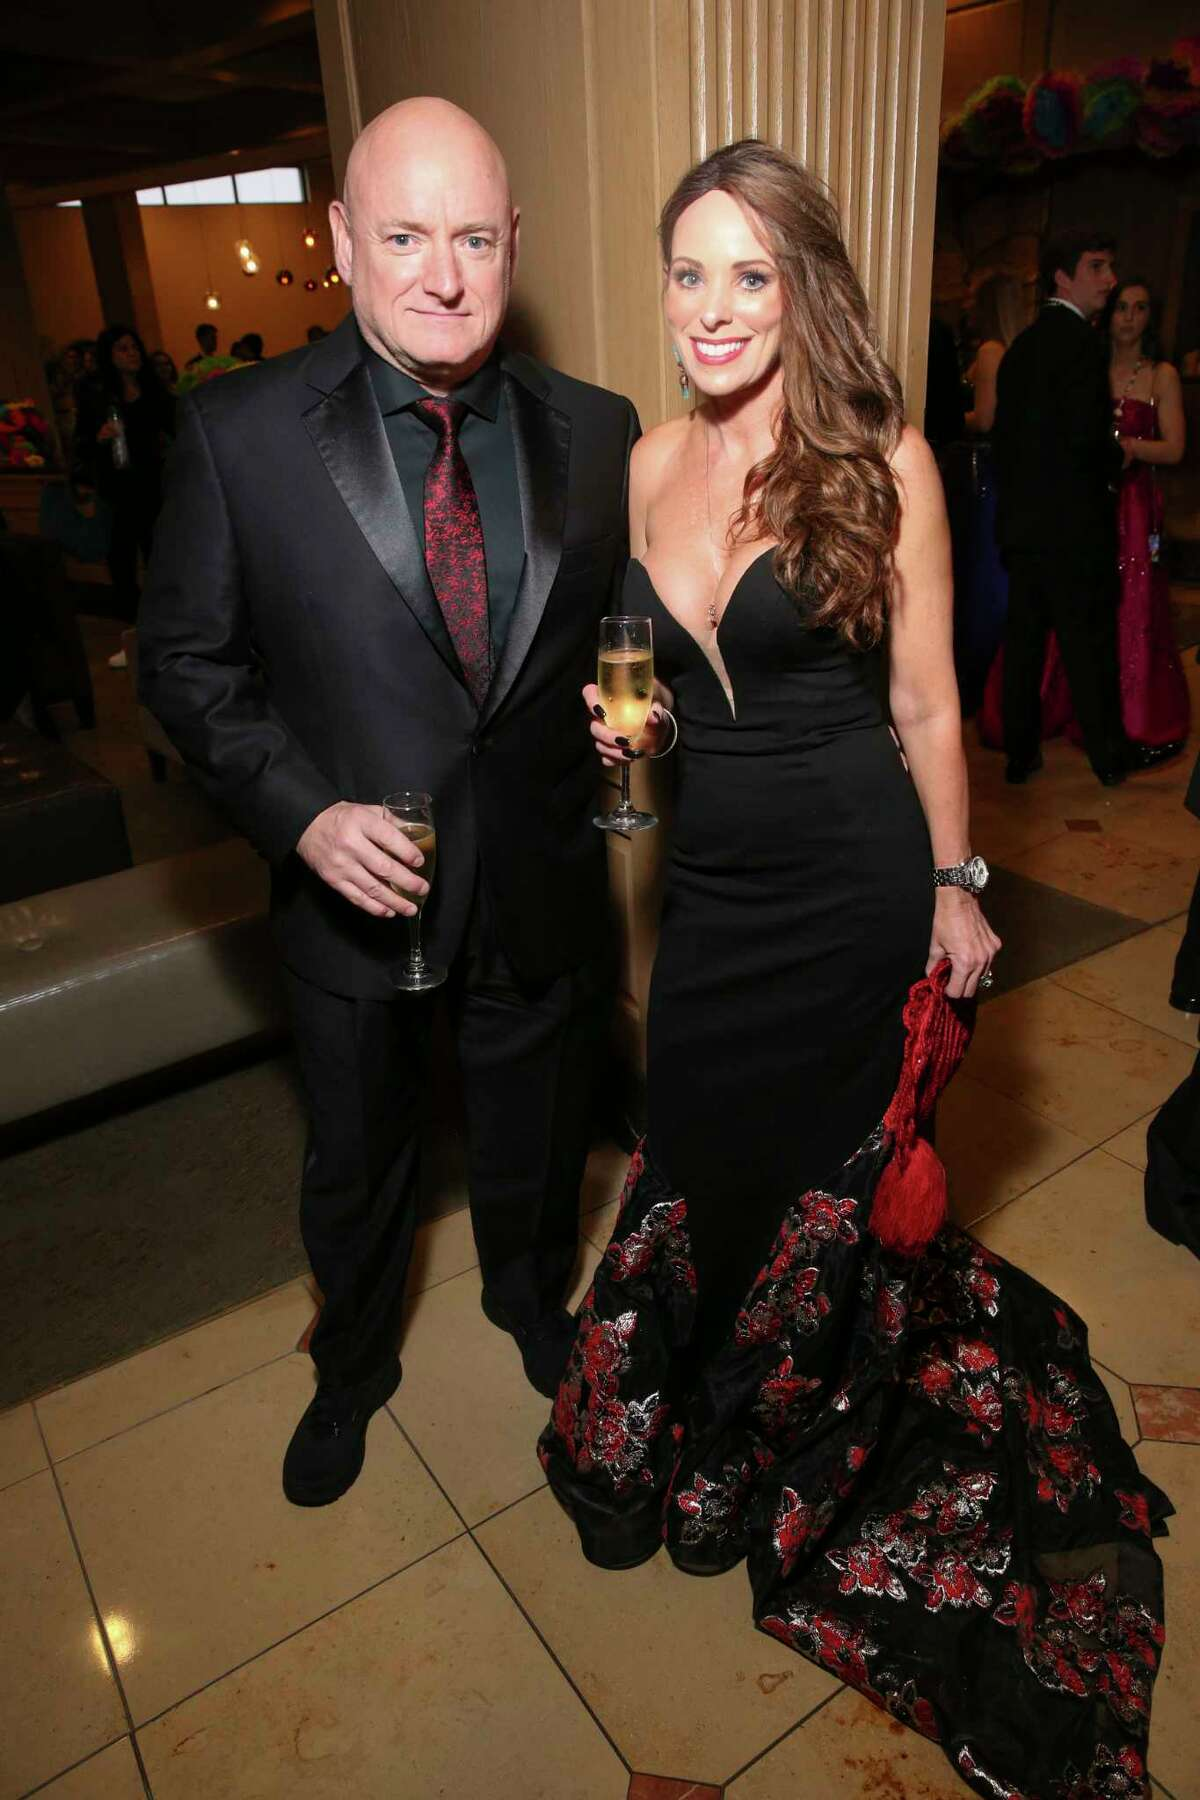 Former astronaut Scott Kelly and wife Amiko pose for a photograph at the San Luis Resort before San Luis Salute on Friday, March 1, 2019, in Galveston.